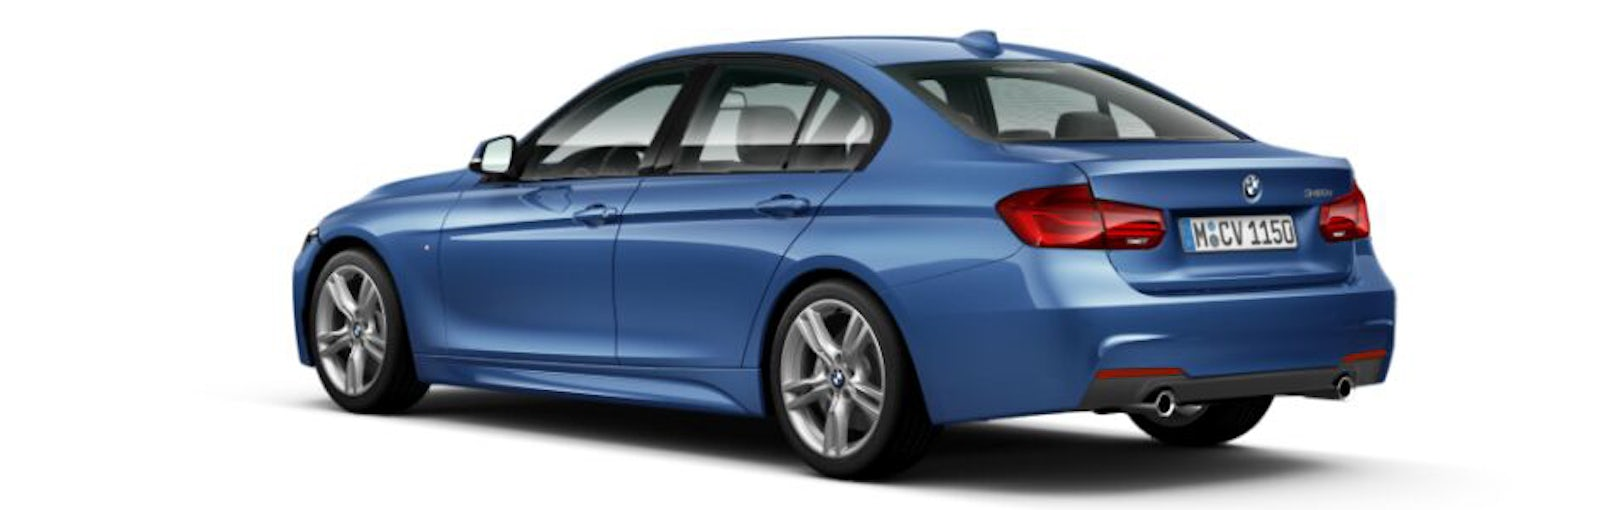 BMW Series Colours Guide And Prices Carwow - Bmw 3 series colors